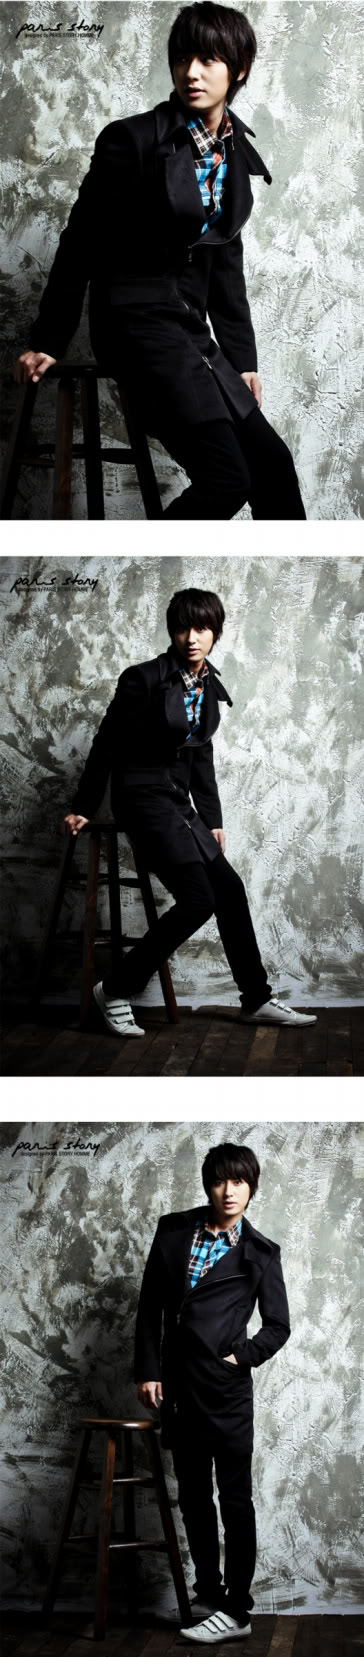 Lee Jee Hoon - Paris Story Hommes Collection I PH85-S-6